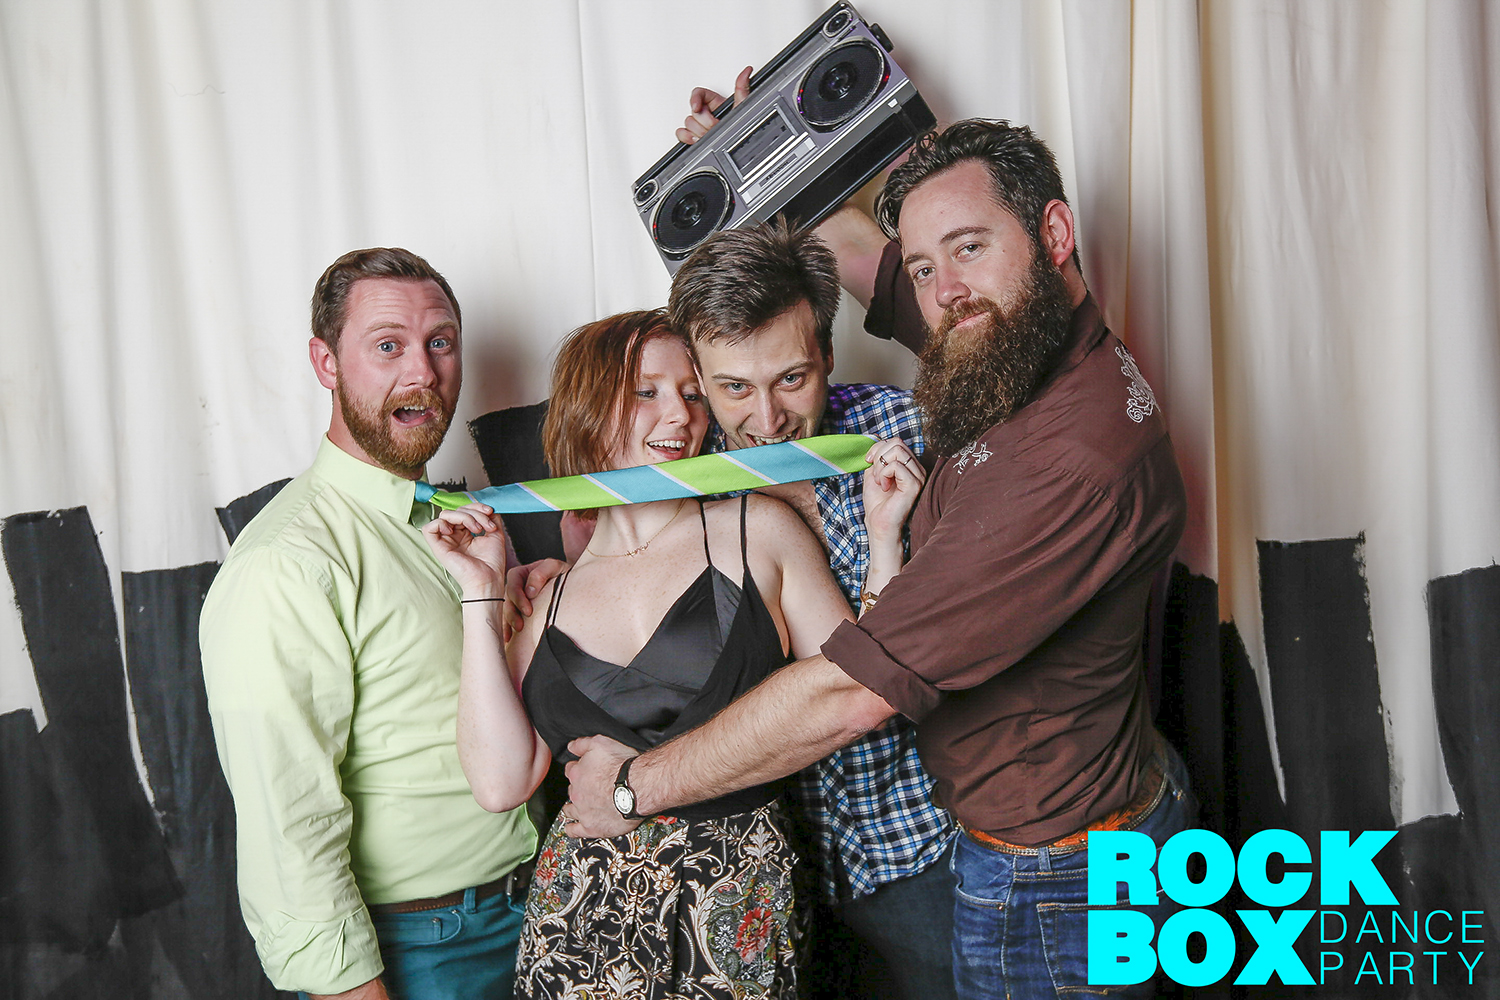 Rock box feb 2015-0113.jpg